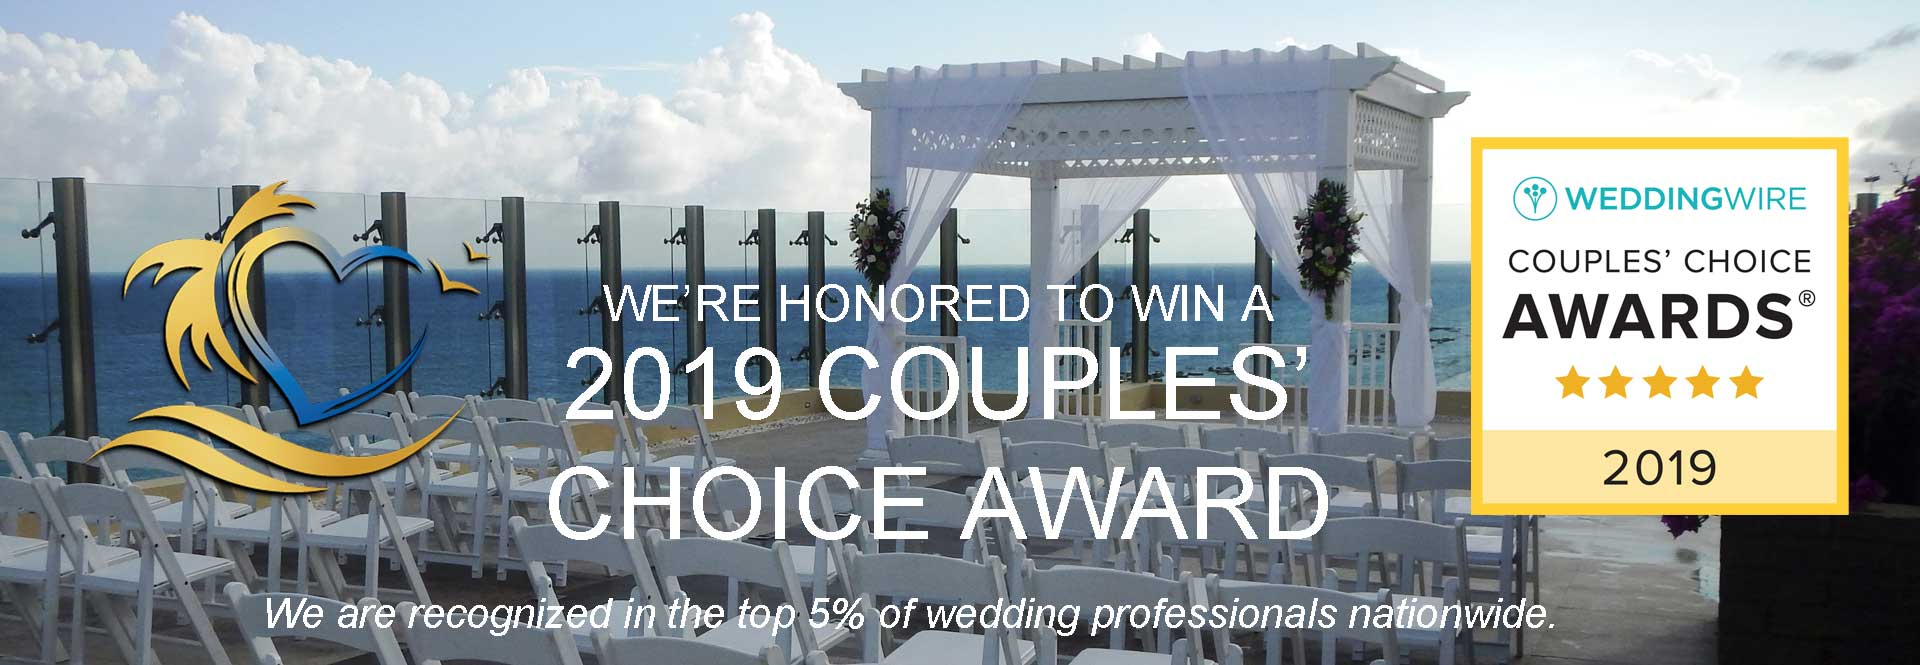 2019-couples-choice-award